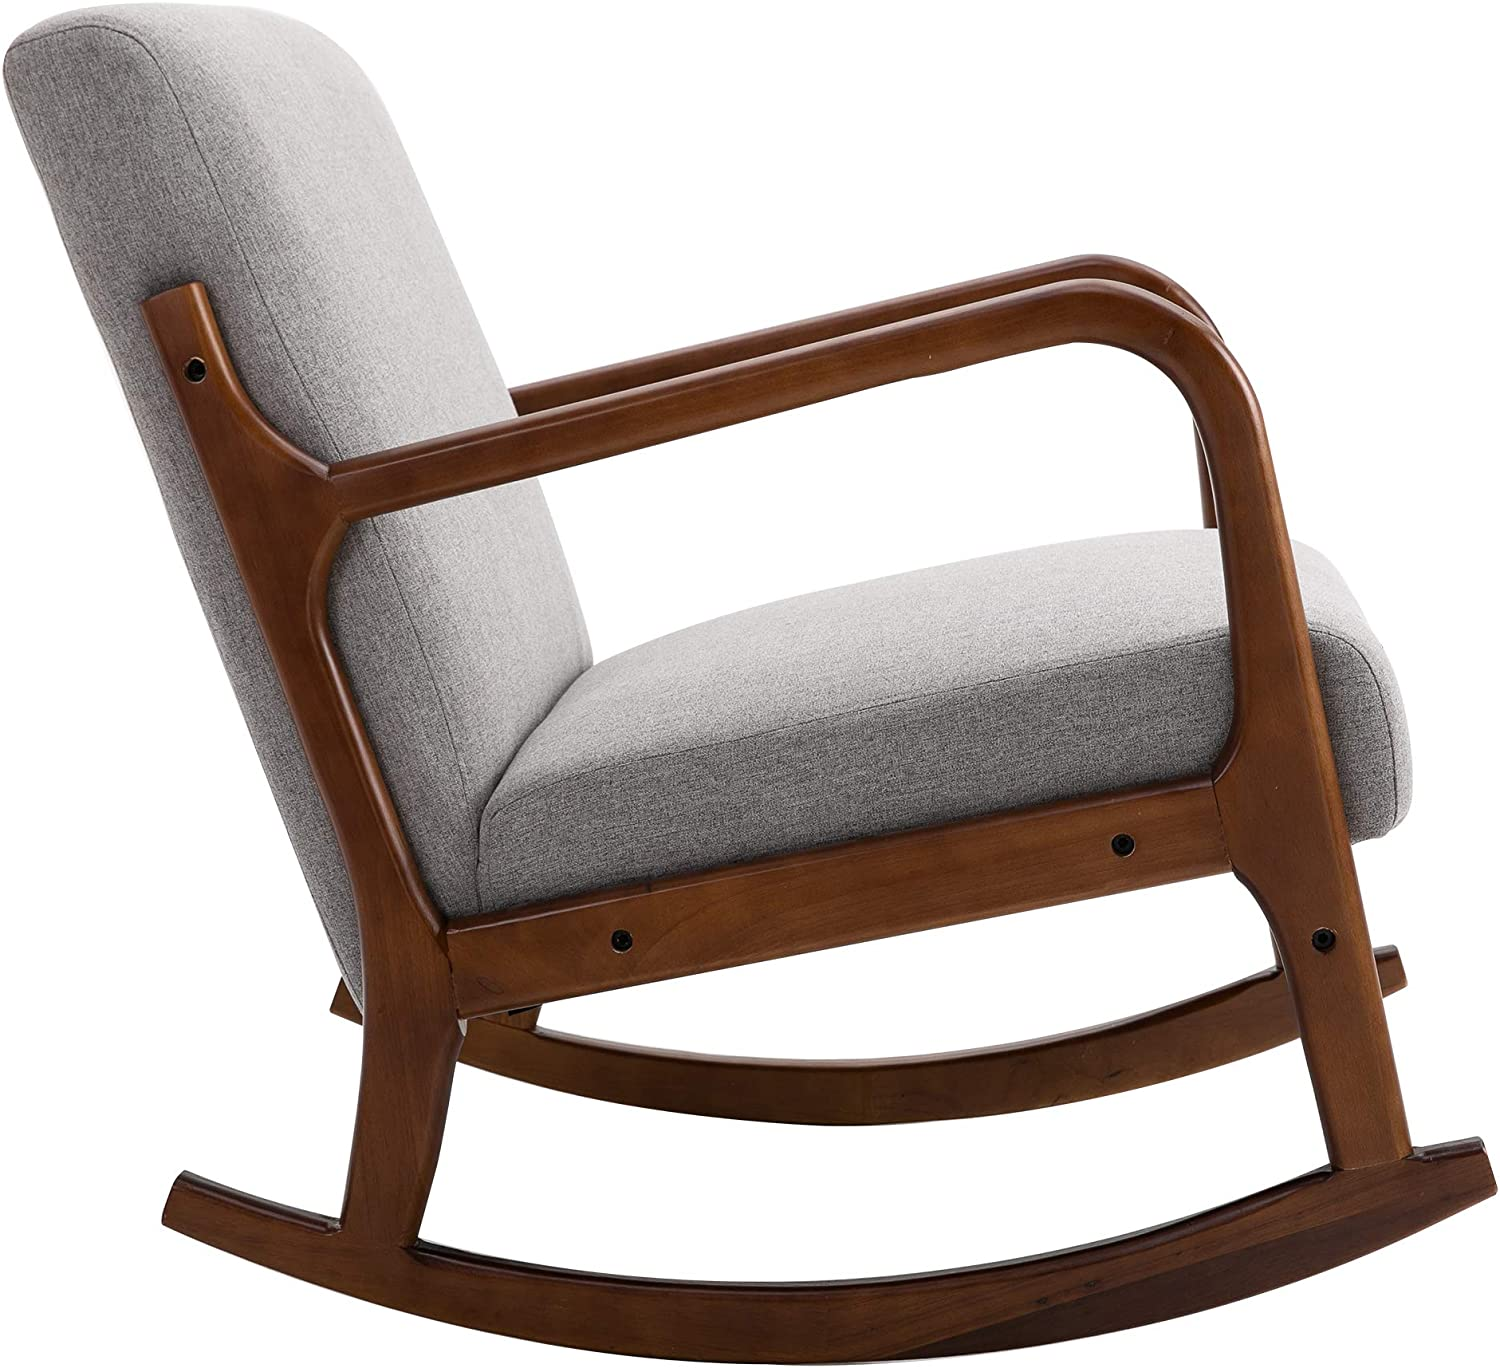 HOMCOM Rocking Chair with Curved Wood Base, Fabric Rocker with Padded Seat Home Furniture Bedroom Living Room Relax, Grey